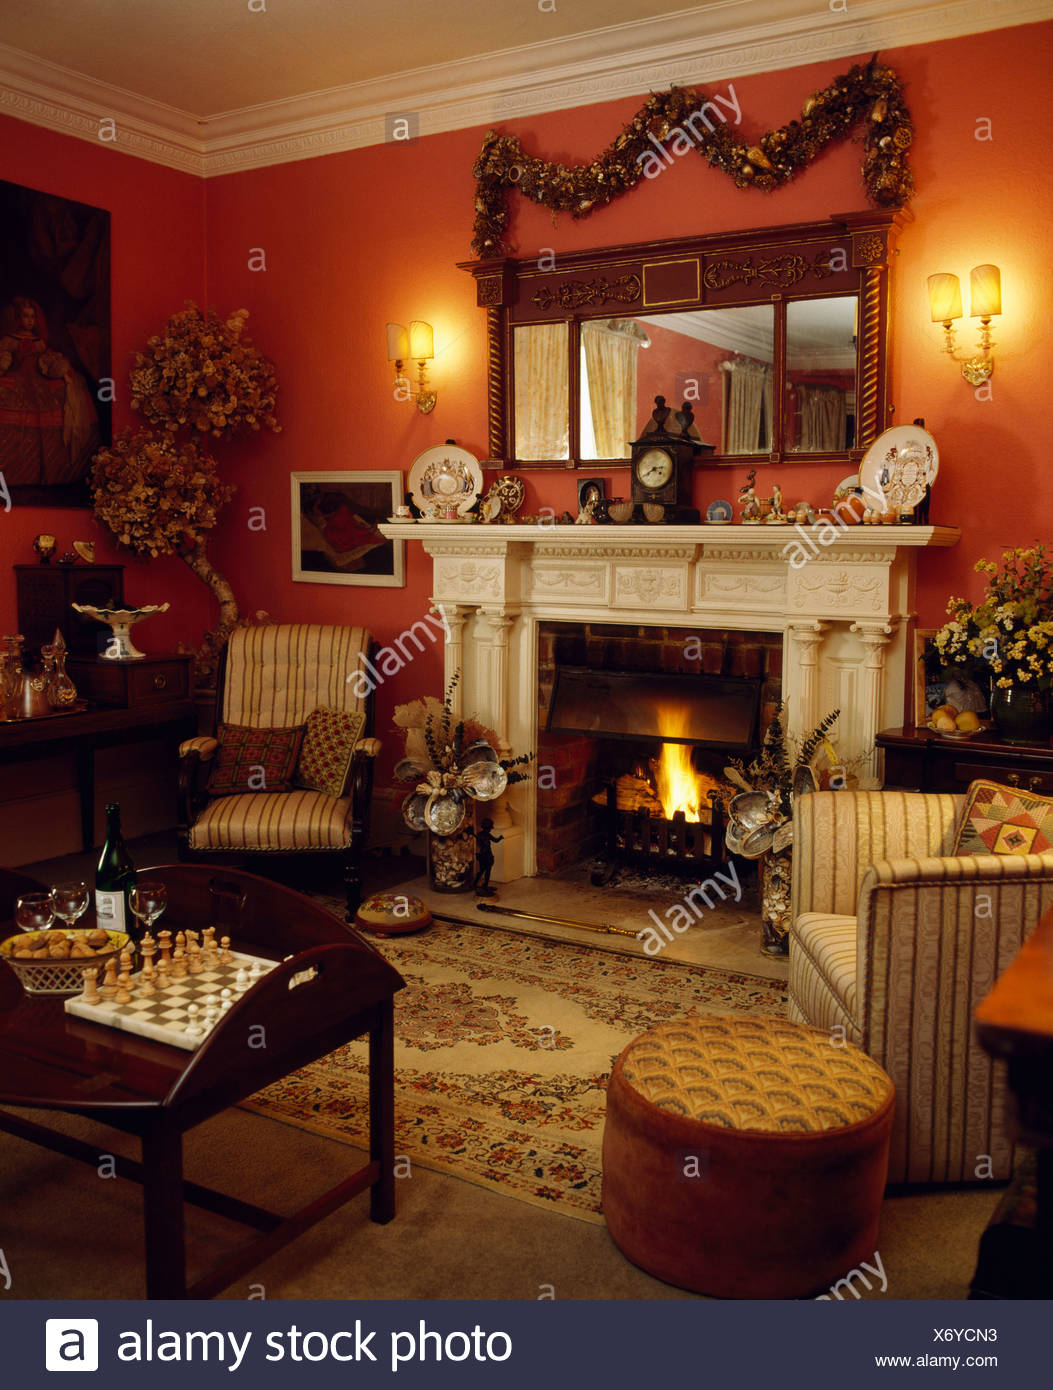 Red Livingroom Decorated For Christmas With Garland And